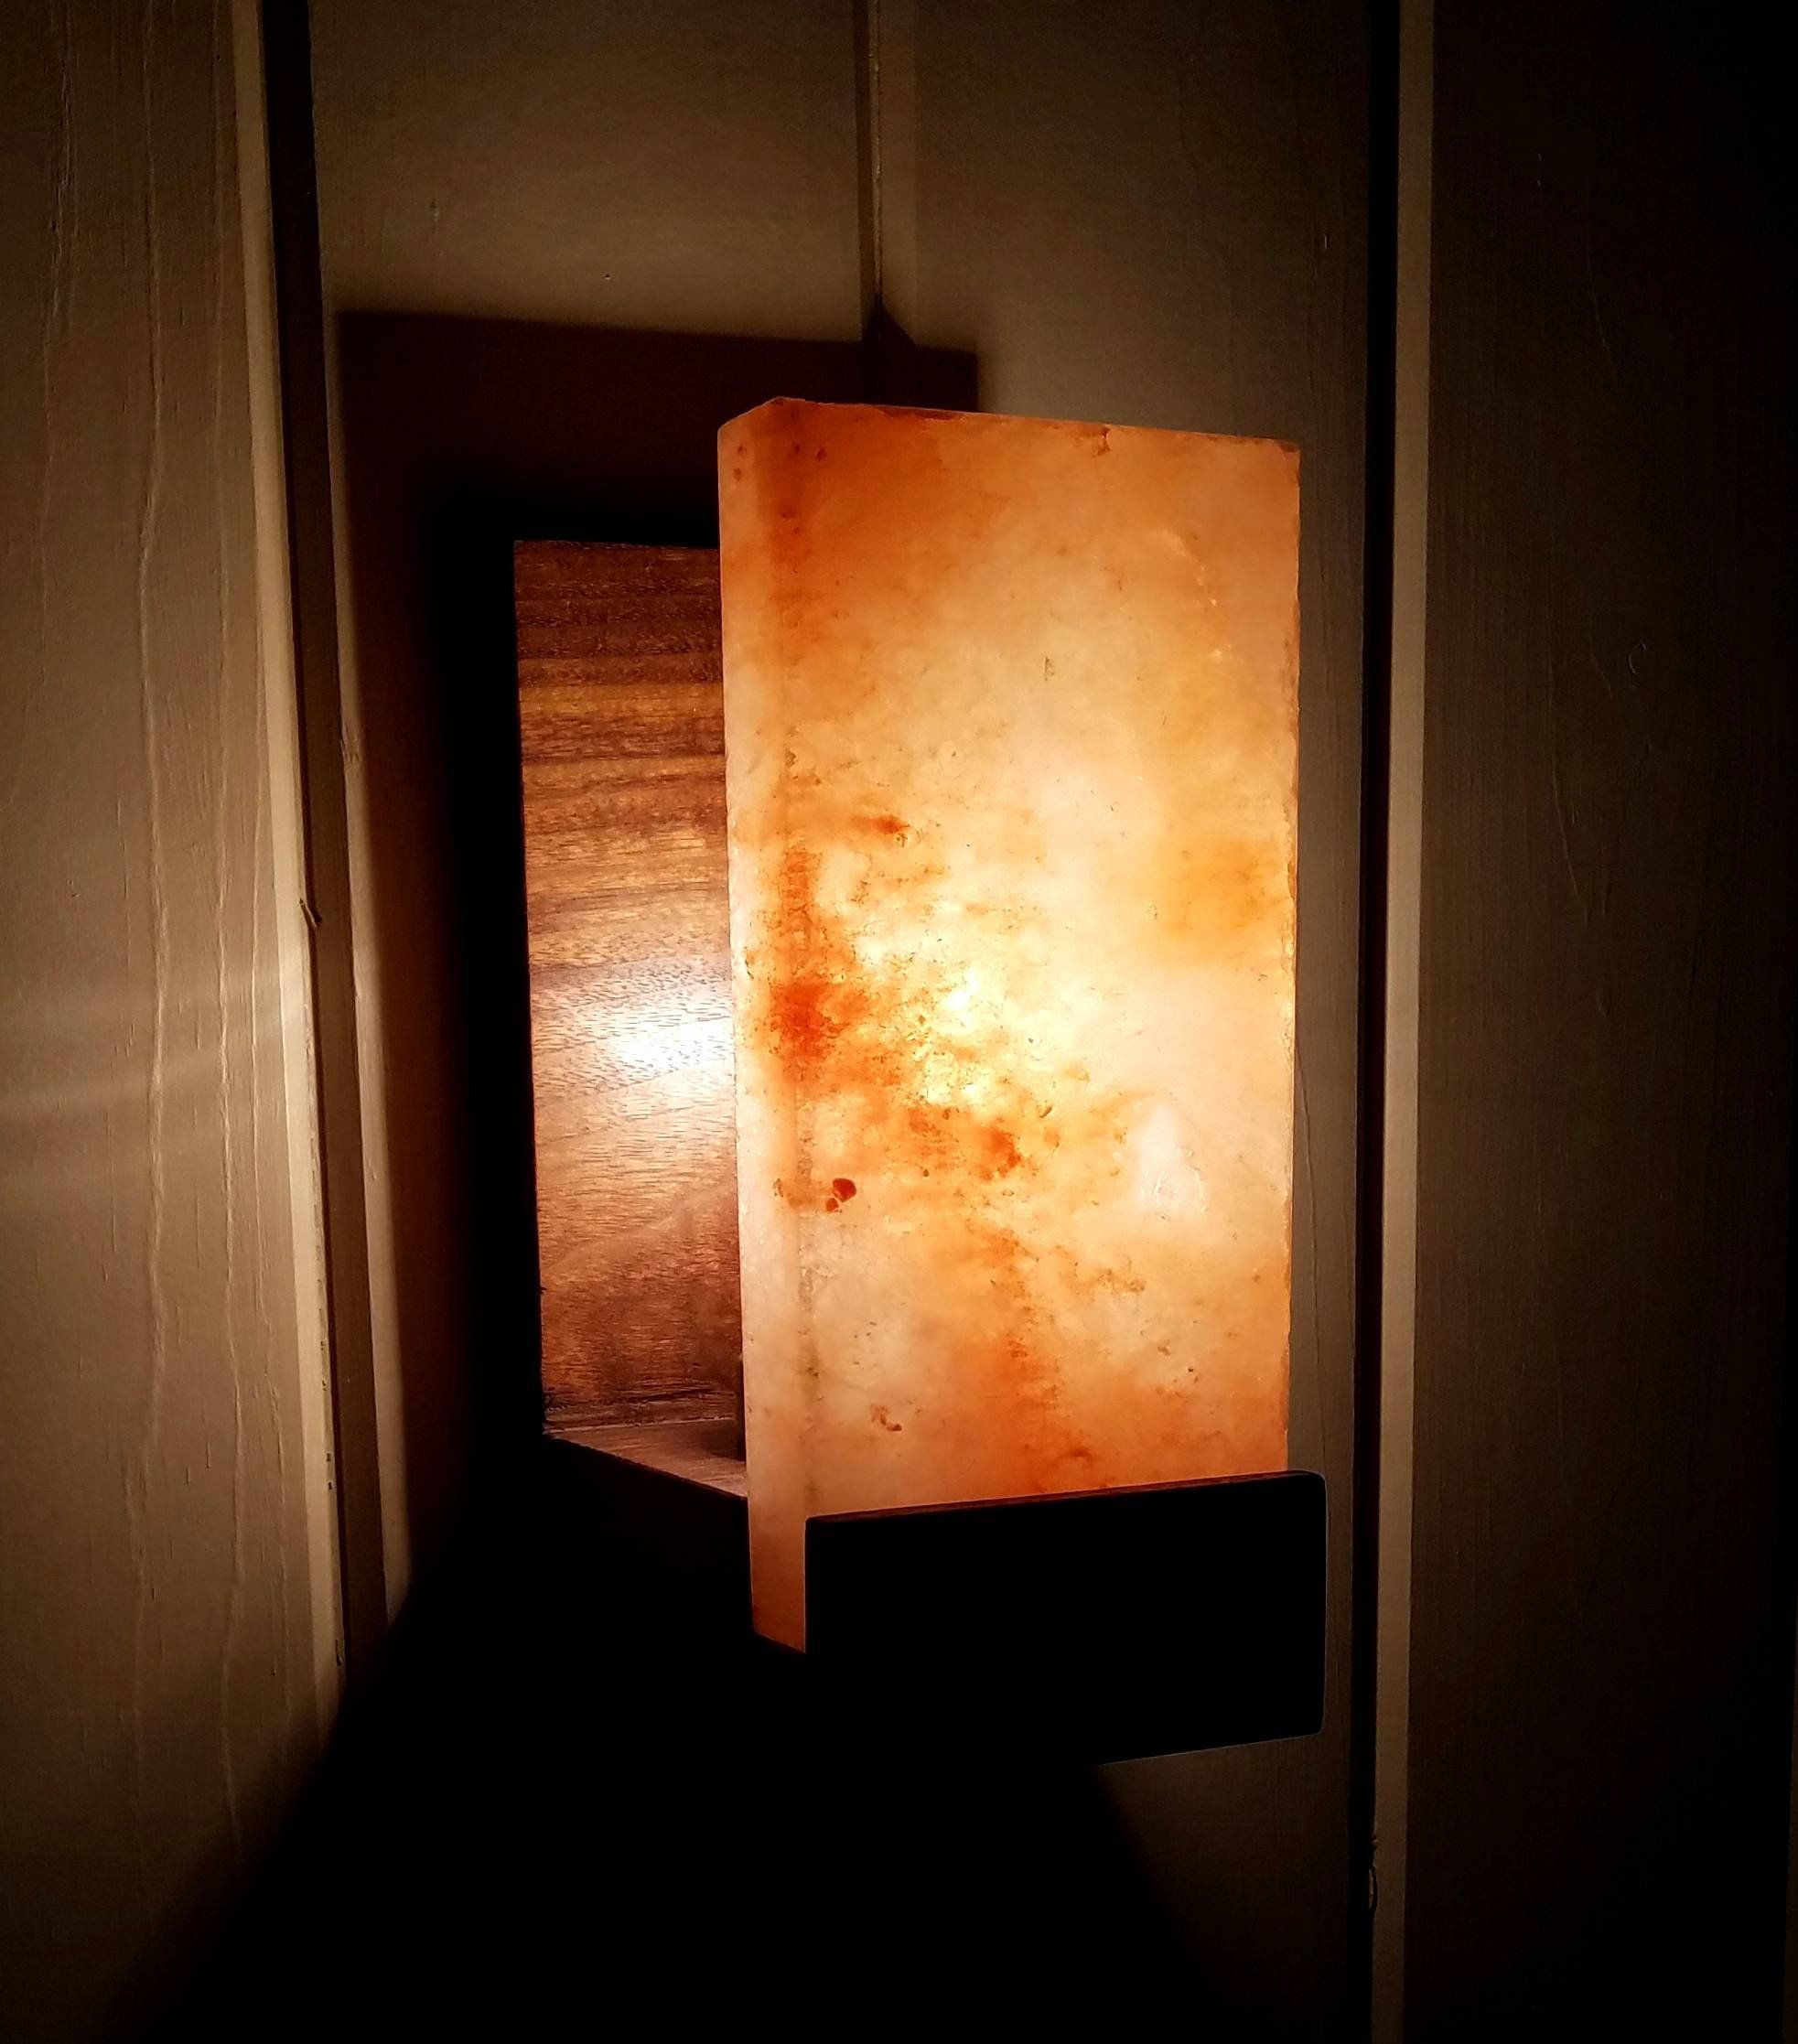 Himalayan Salt Lamp Sconce Black Walnut Sconce Etsy In 2020 Salt Lamp Sconce Lamp Himalayan Salt Lamp